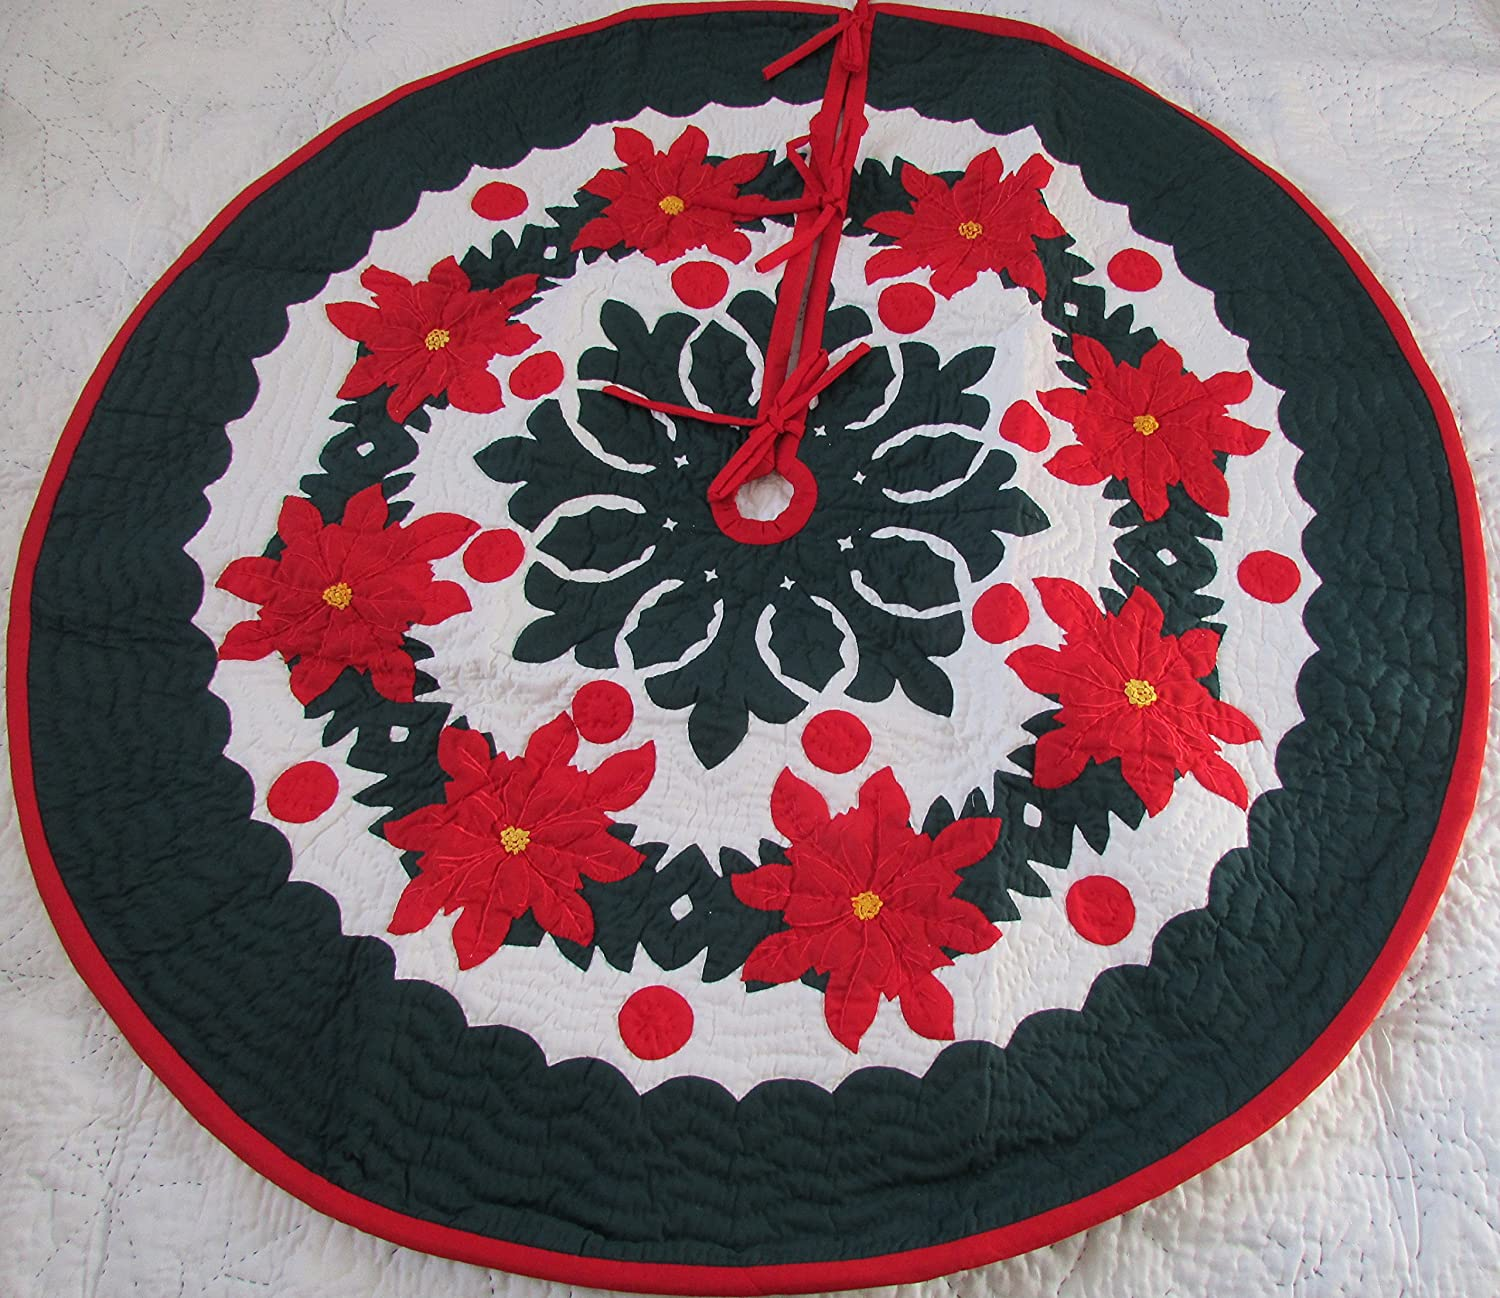 Amazon.com: Hawaiian quilt 100% hand quilted/hand appliqued ...